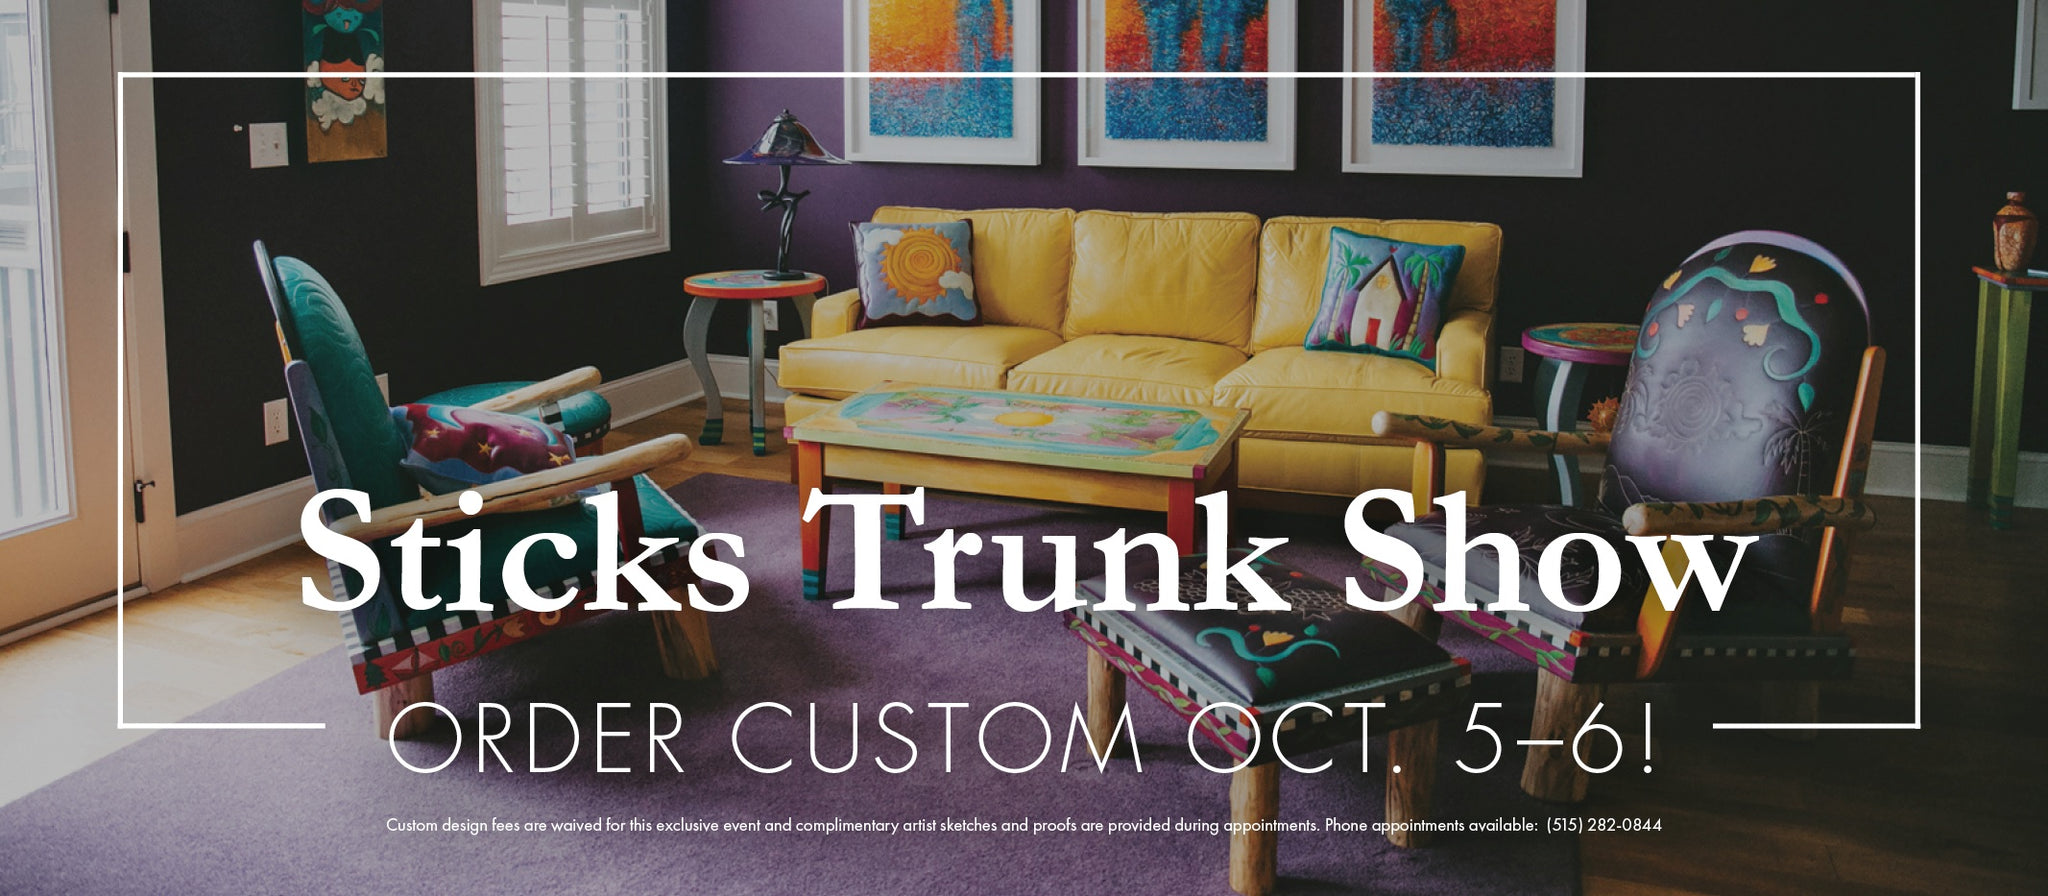 Save the Date: Sticks Gallery Trunk Show Oct. 5th-6th!